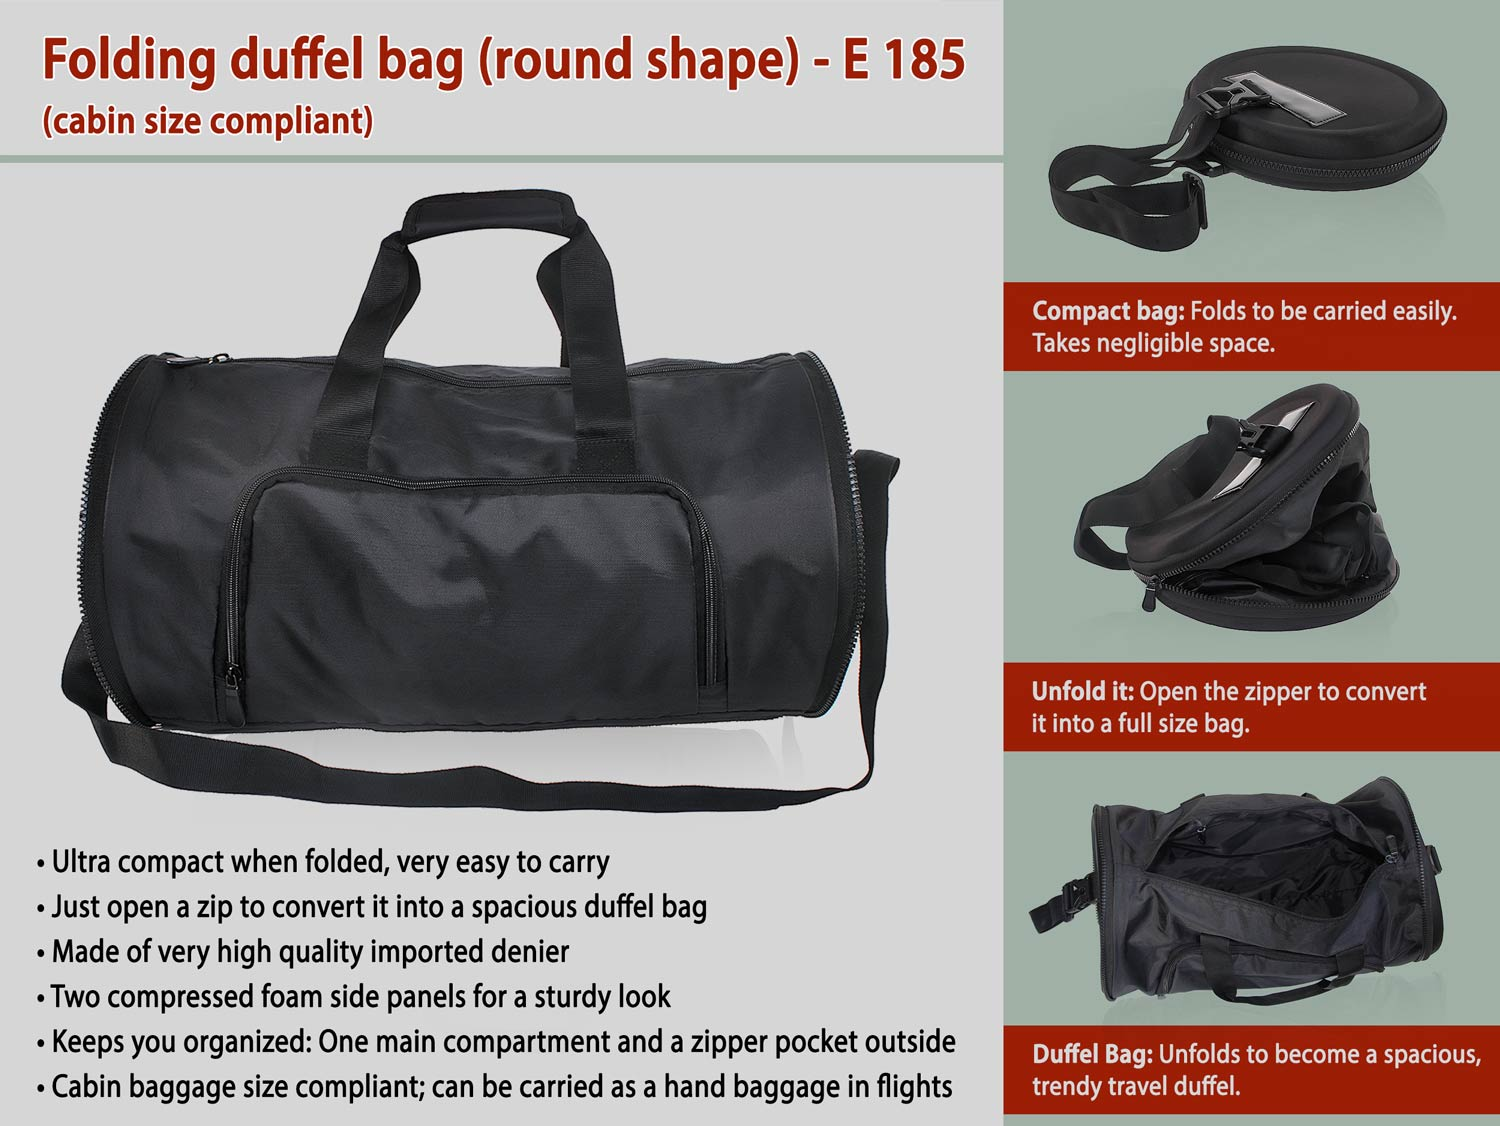 E185 - FOLDING DUFFEL BAG (ROUND SHAPE) (CABIN SIZE COMPLIANT)